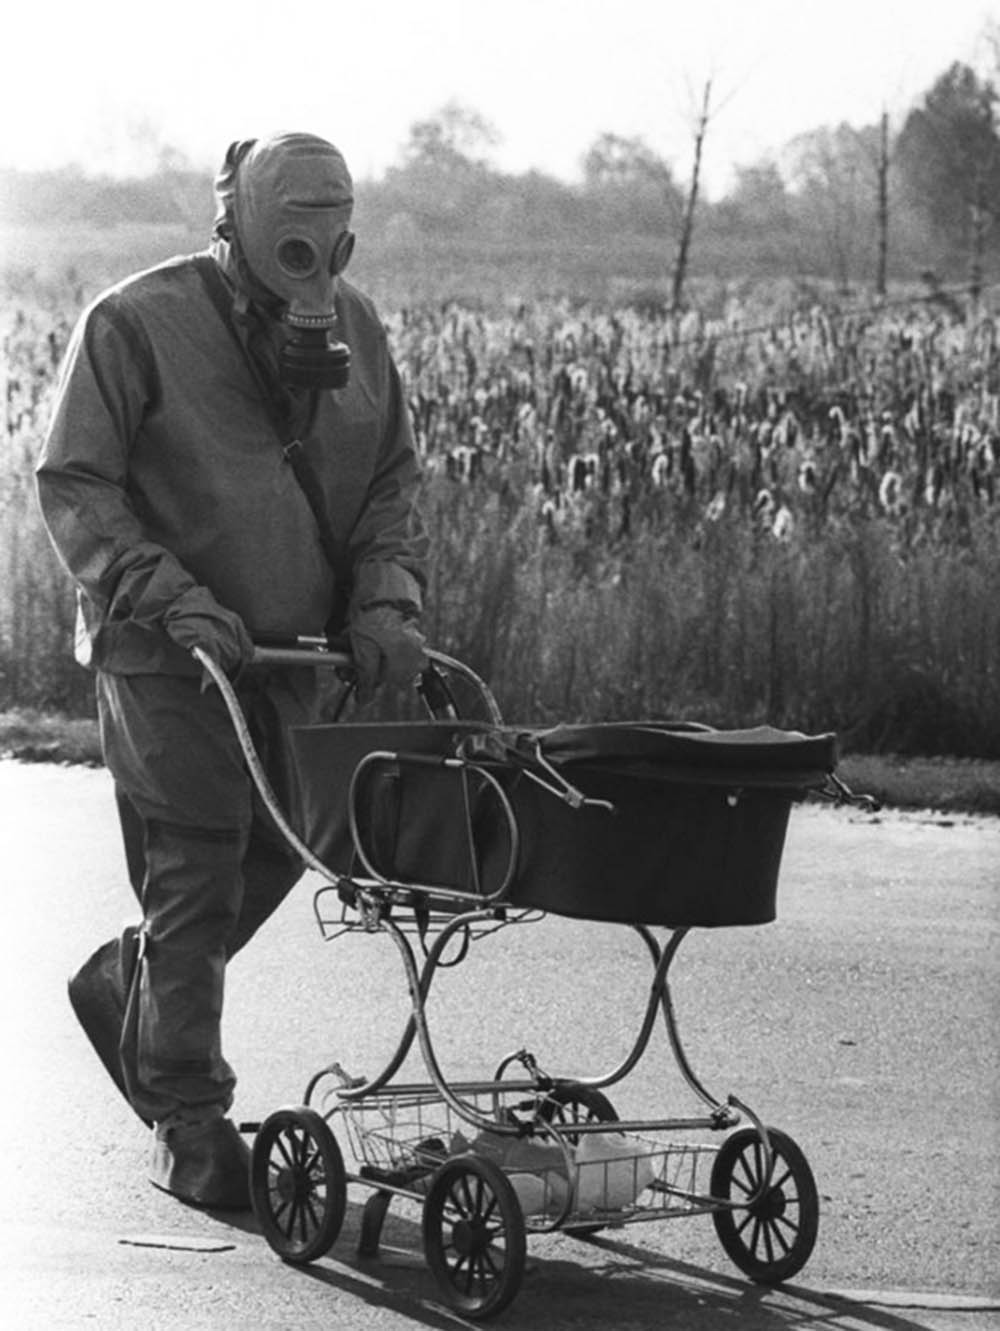 A Chernobyl liquidator pushes a baby in a carriage who was found during the cleanup of the Chernobyl nuclear accident, 1986.jpg